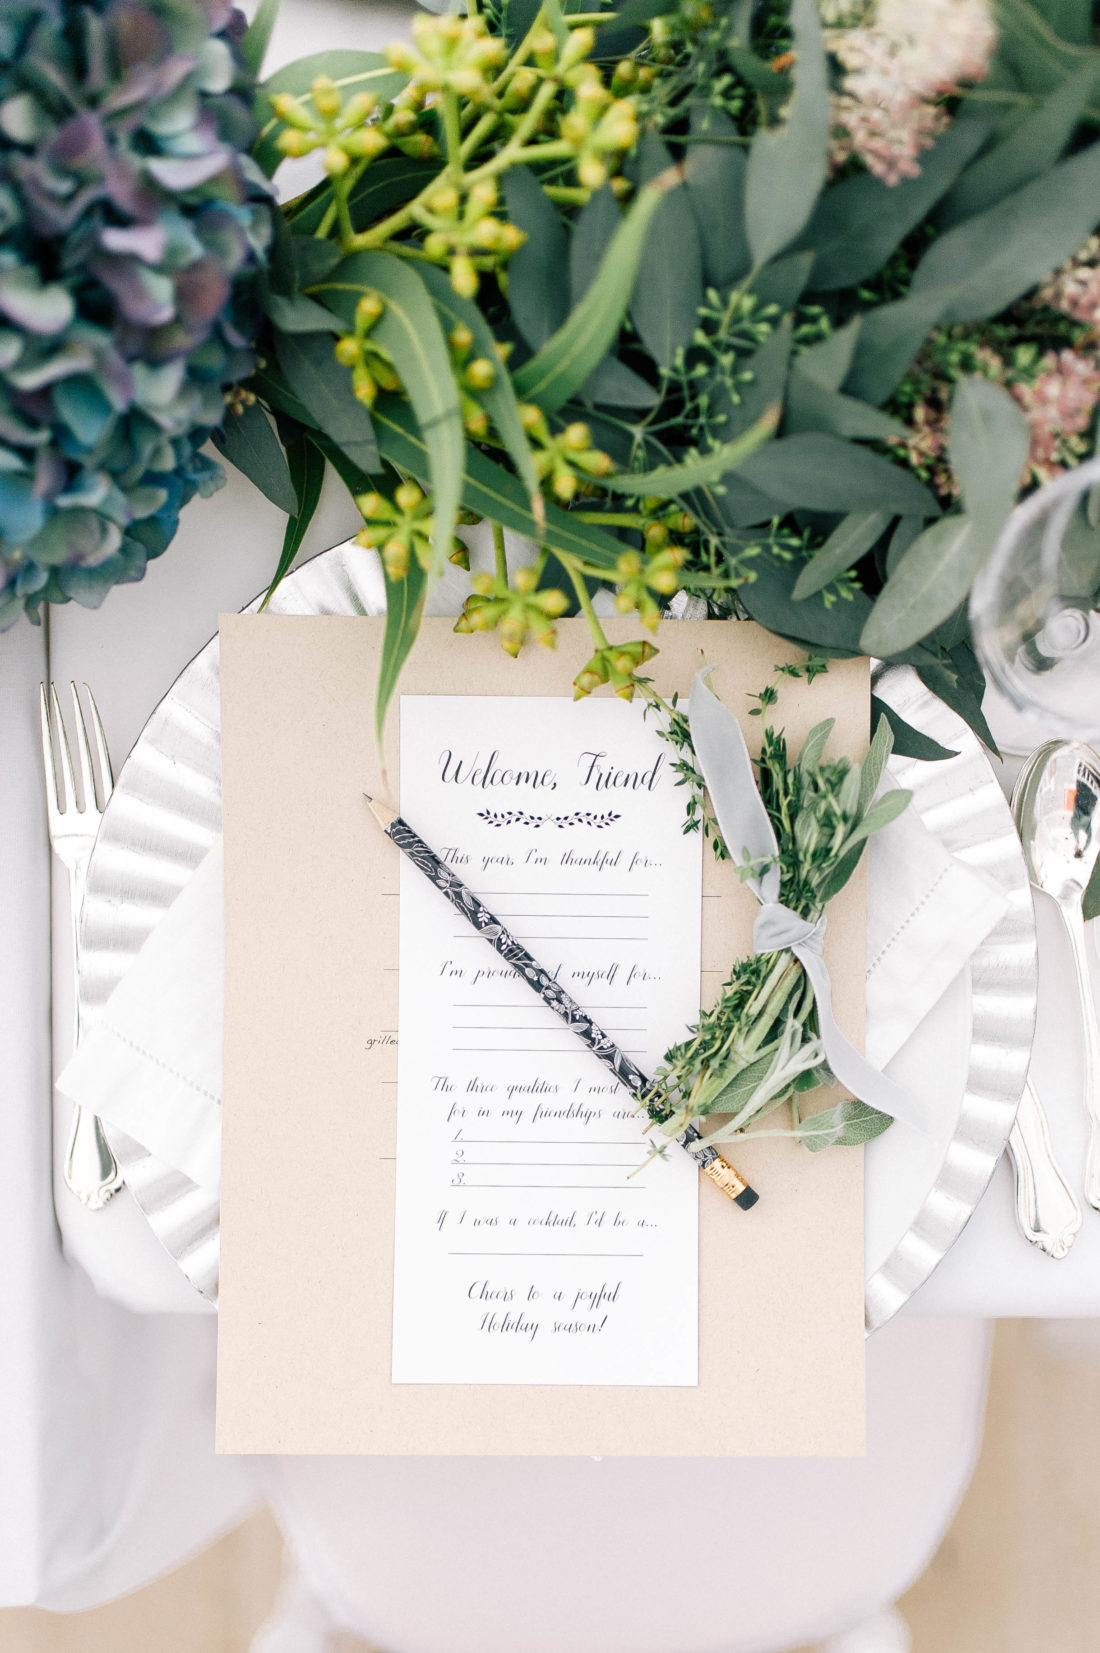 A place setting featuring a guest questionnaire at the Friendsgiving for No Kid Hungry at Eva Amurri Martino's Connecticut home